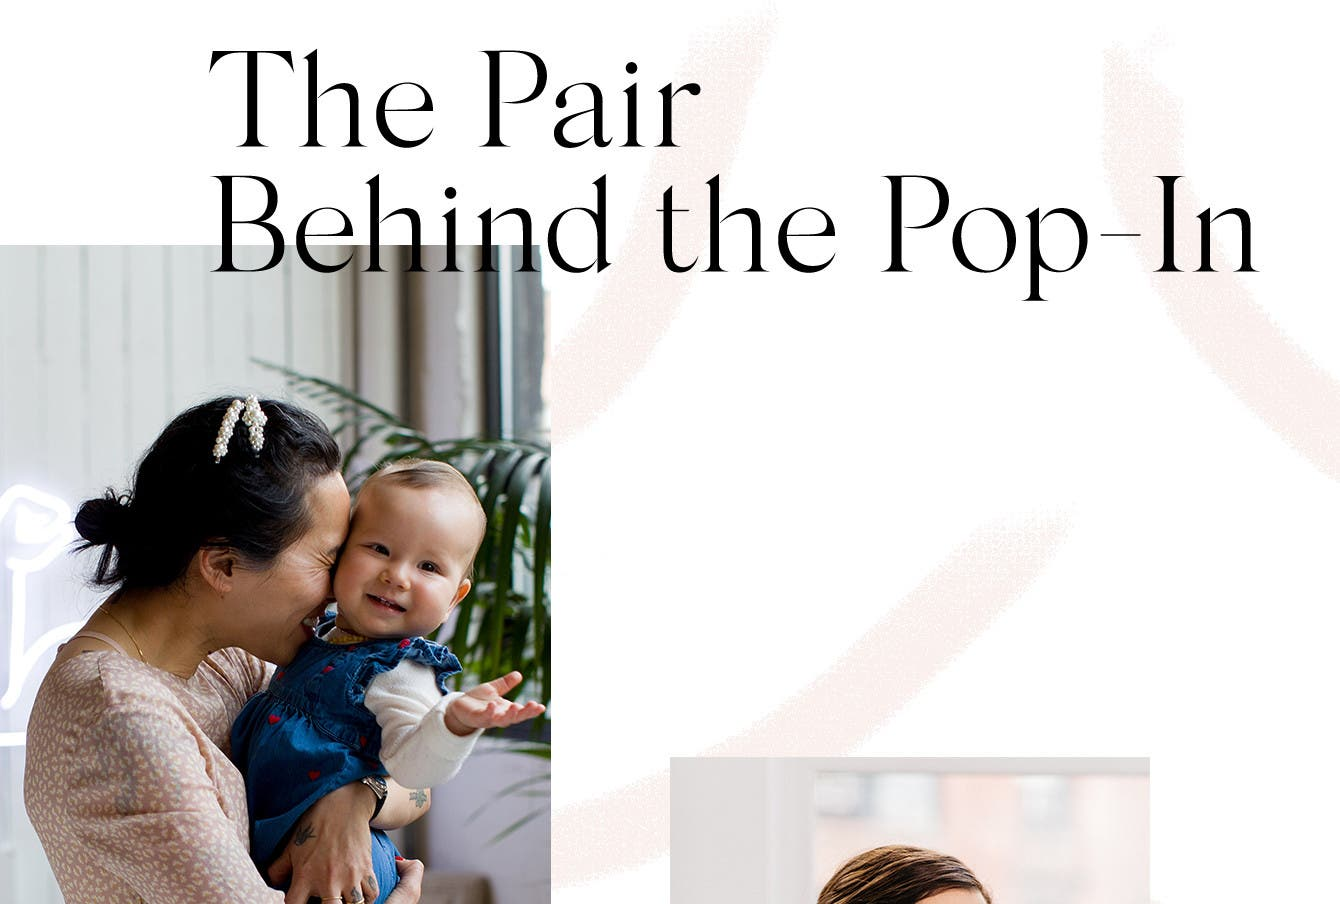 The pair behind the Pop-In: Ariane Goldman and Olivia Kim interview.